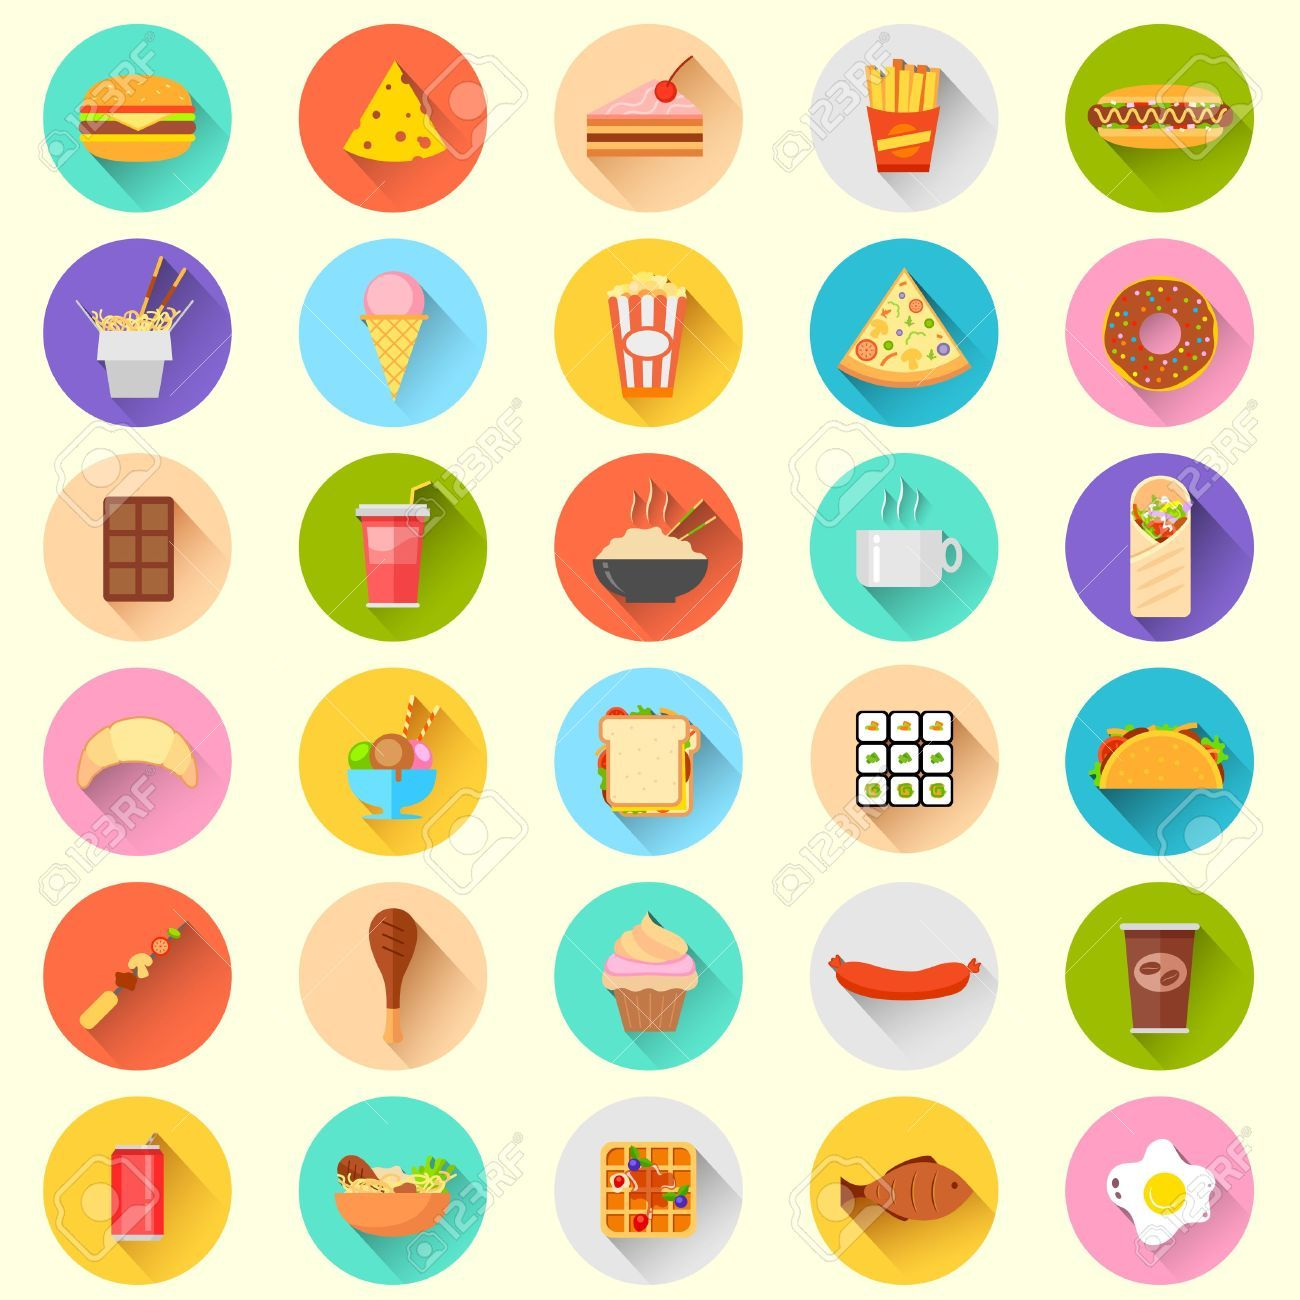 Illustration Of Flat Fast Food Icon Royalty Free Cliparts, Vectors ...